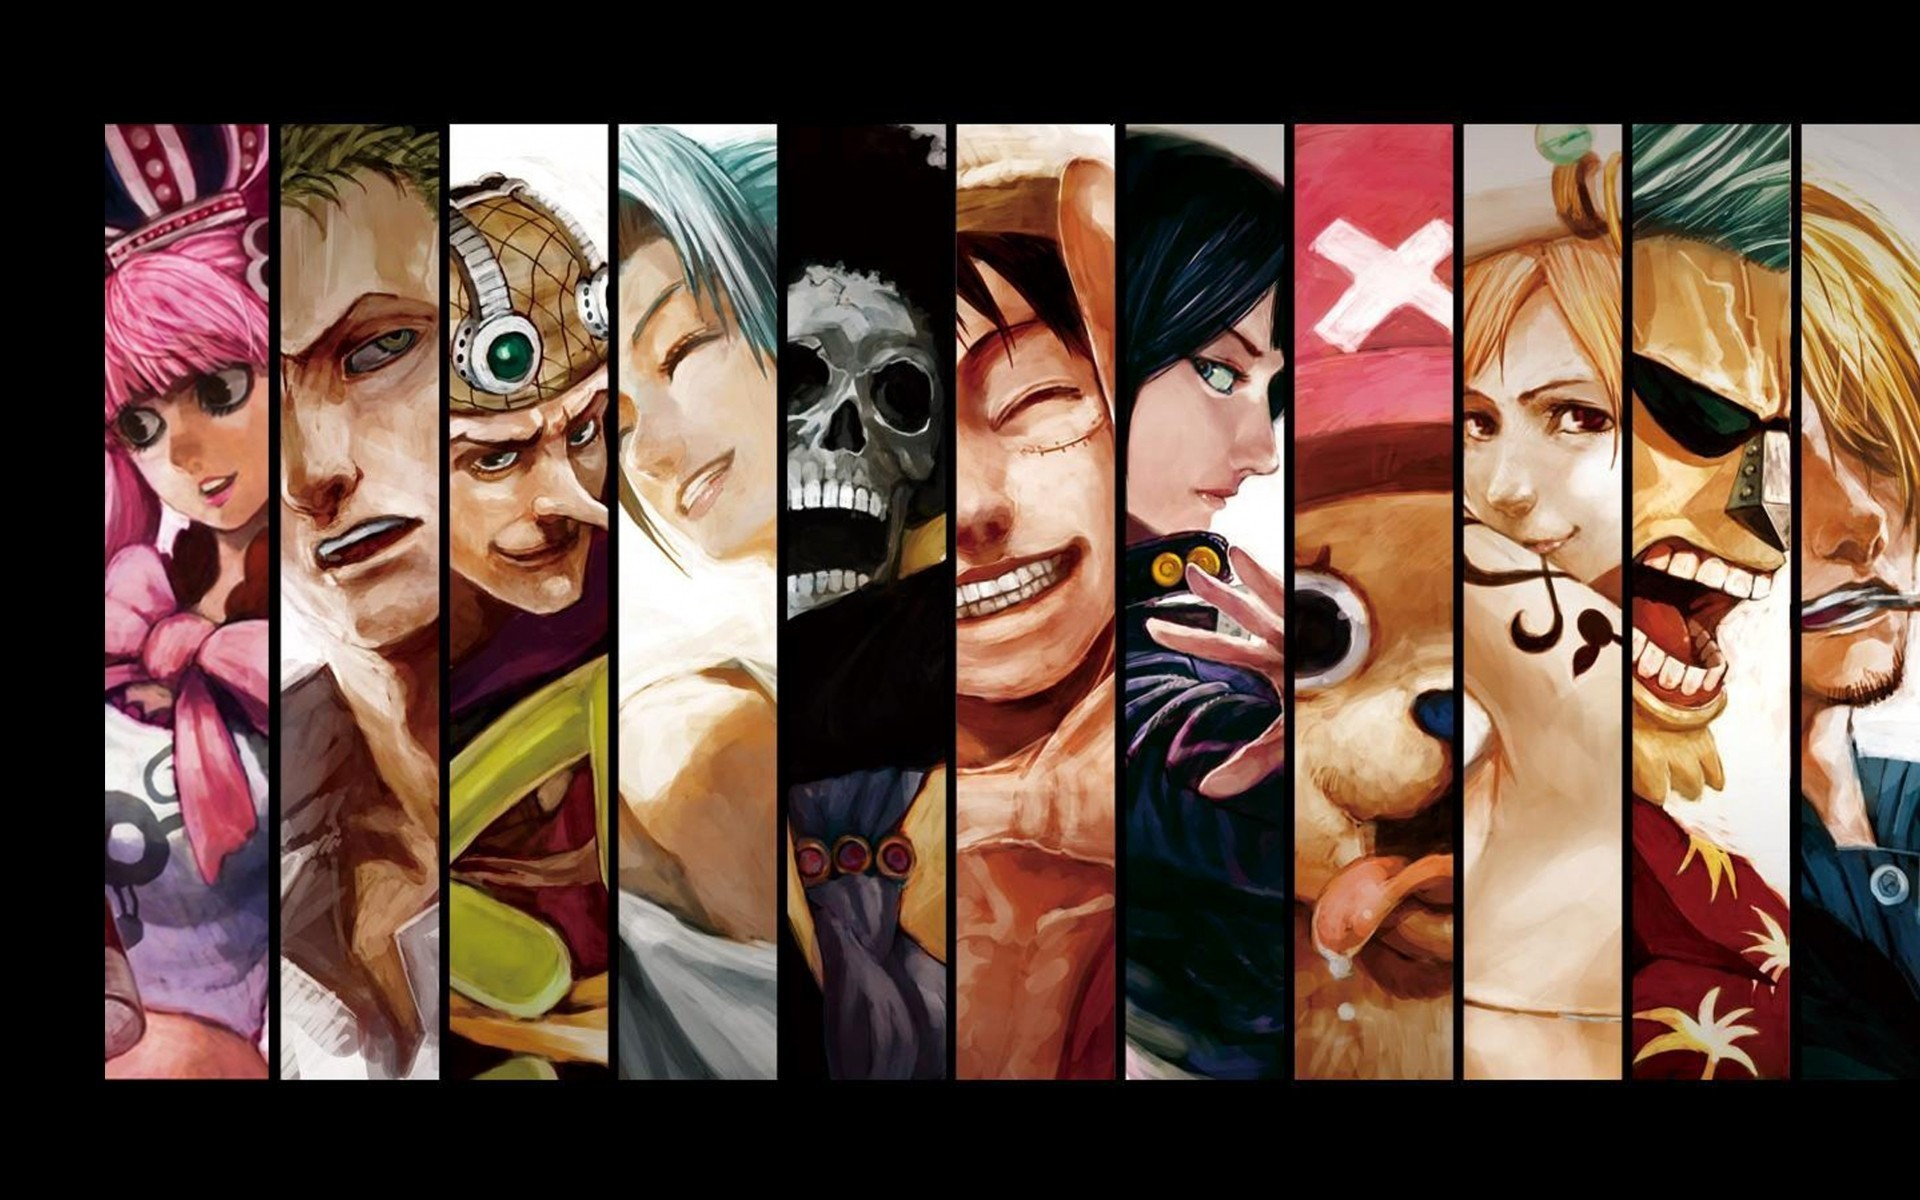 1920x1200 ... Sanji One piece nico robin nami luffy zoro sanji alternative art  chopper .